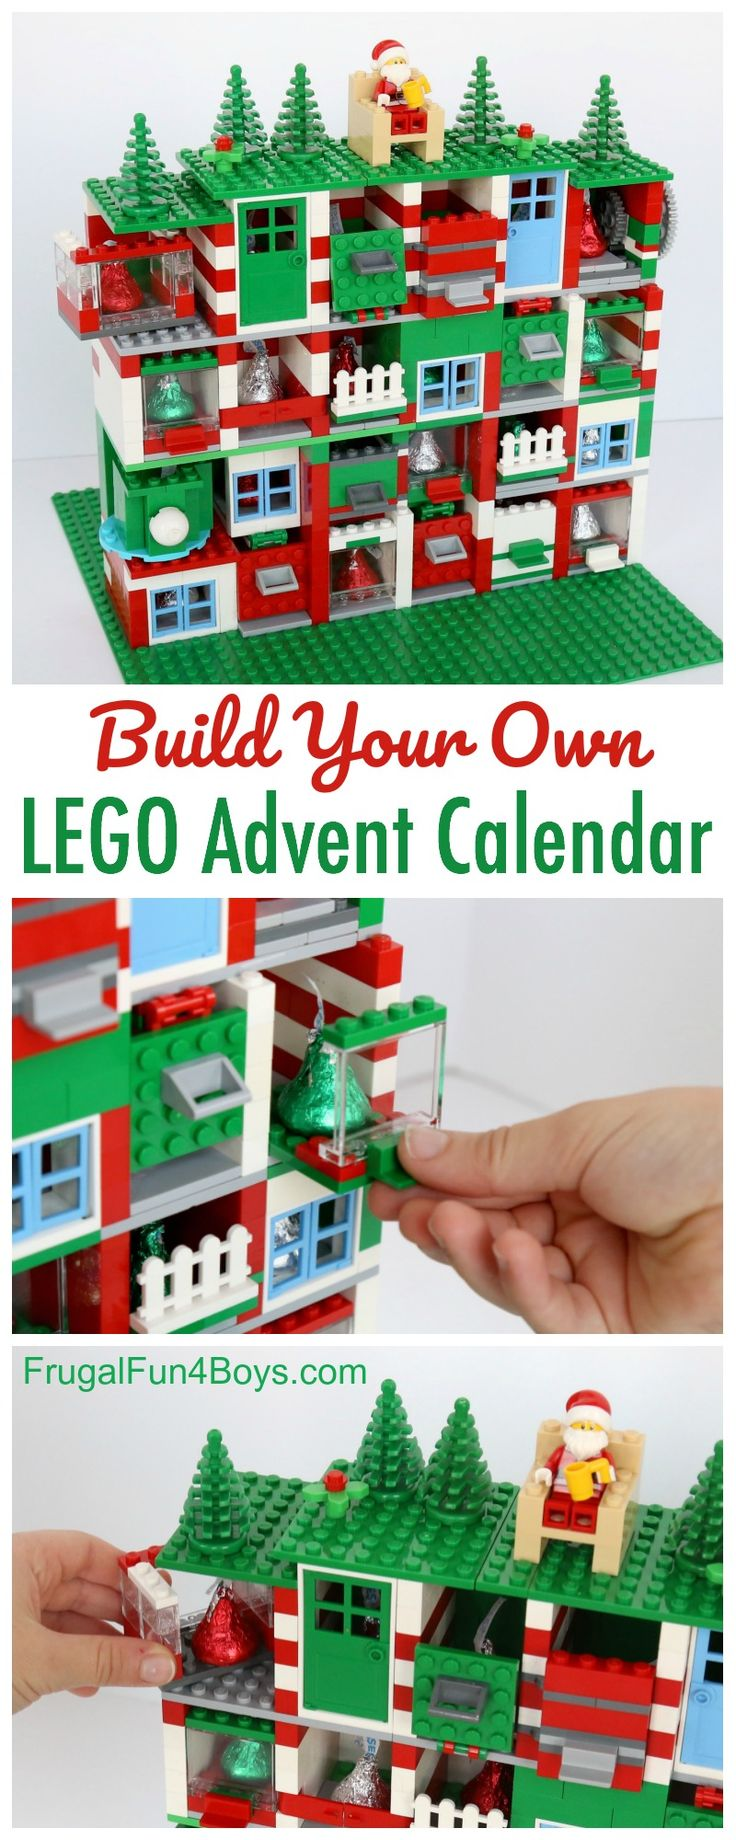 Build Your Own LEGO Advent Calendar! 24 compartments that hold candy so you can count down to Christmas. How many different ways can you build a compartment that opens? #lego #legoadventcalendar #adventskalender